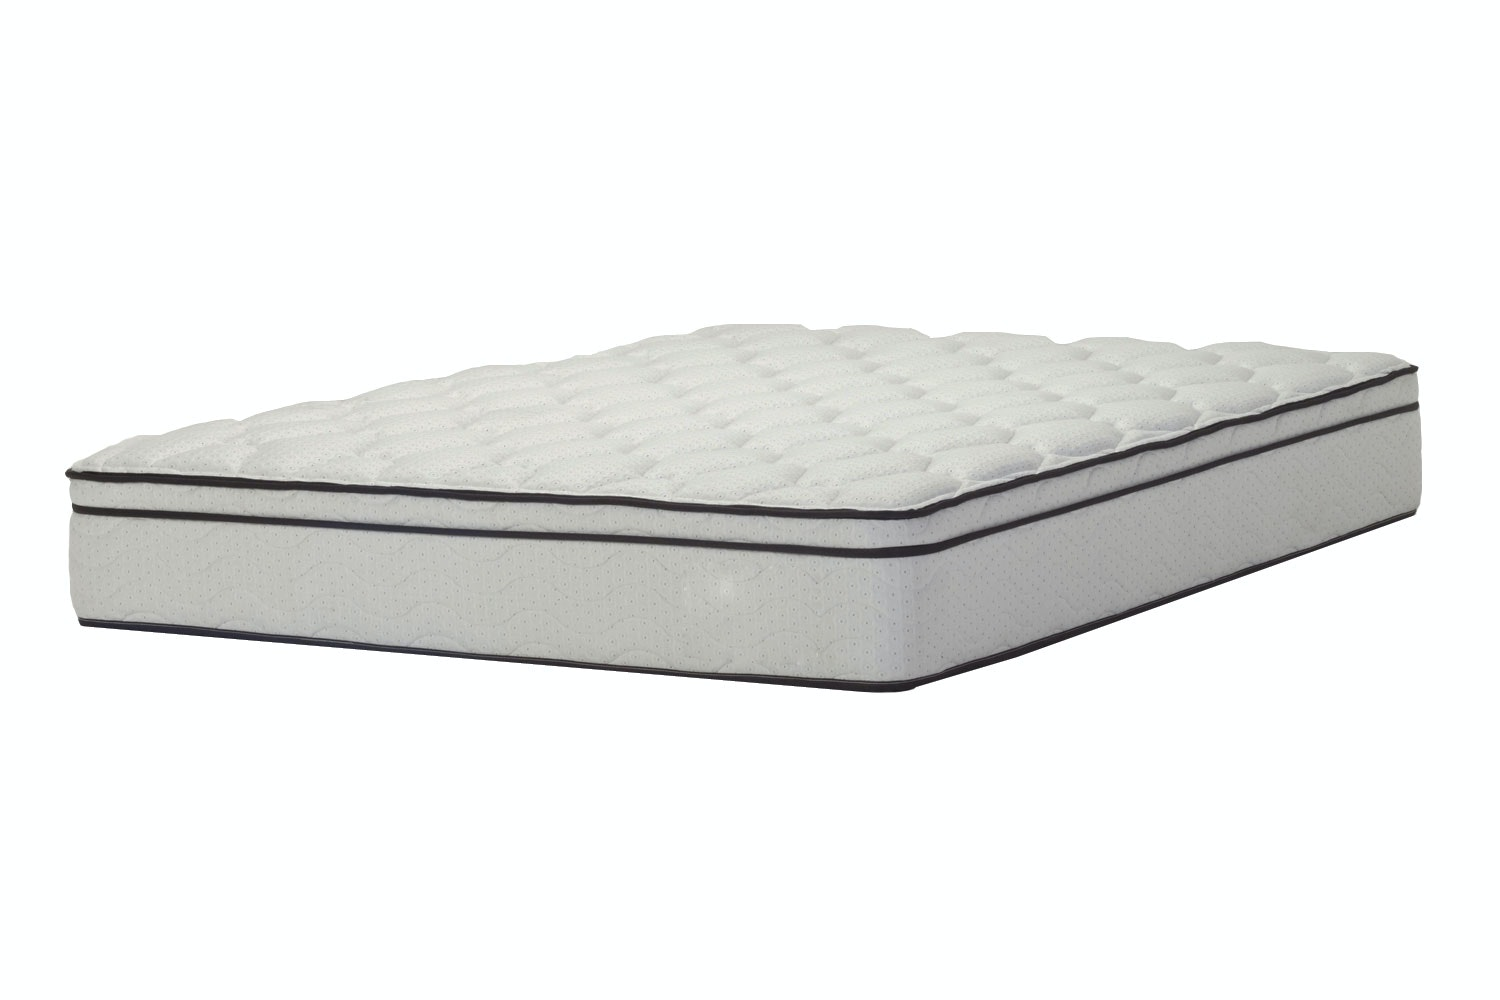 Sierra King Mattress by A.H. Beard